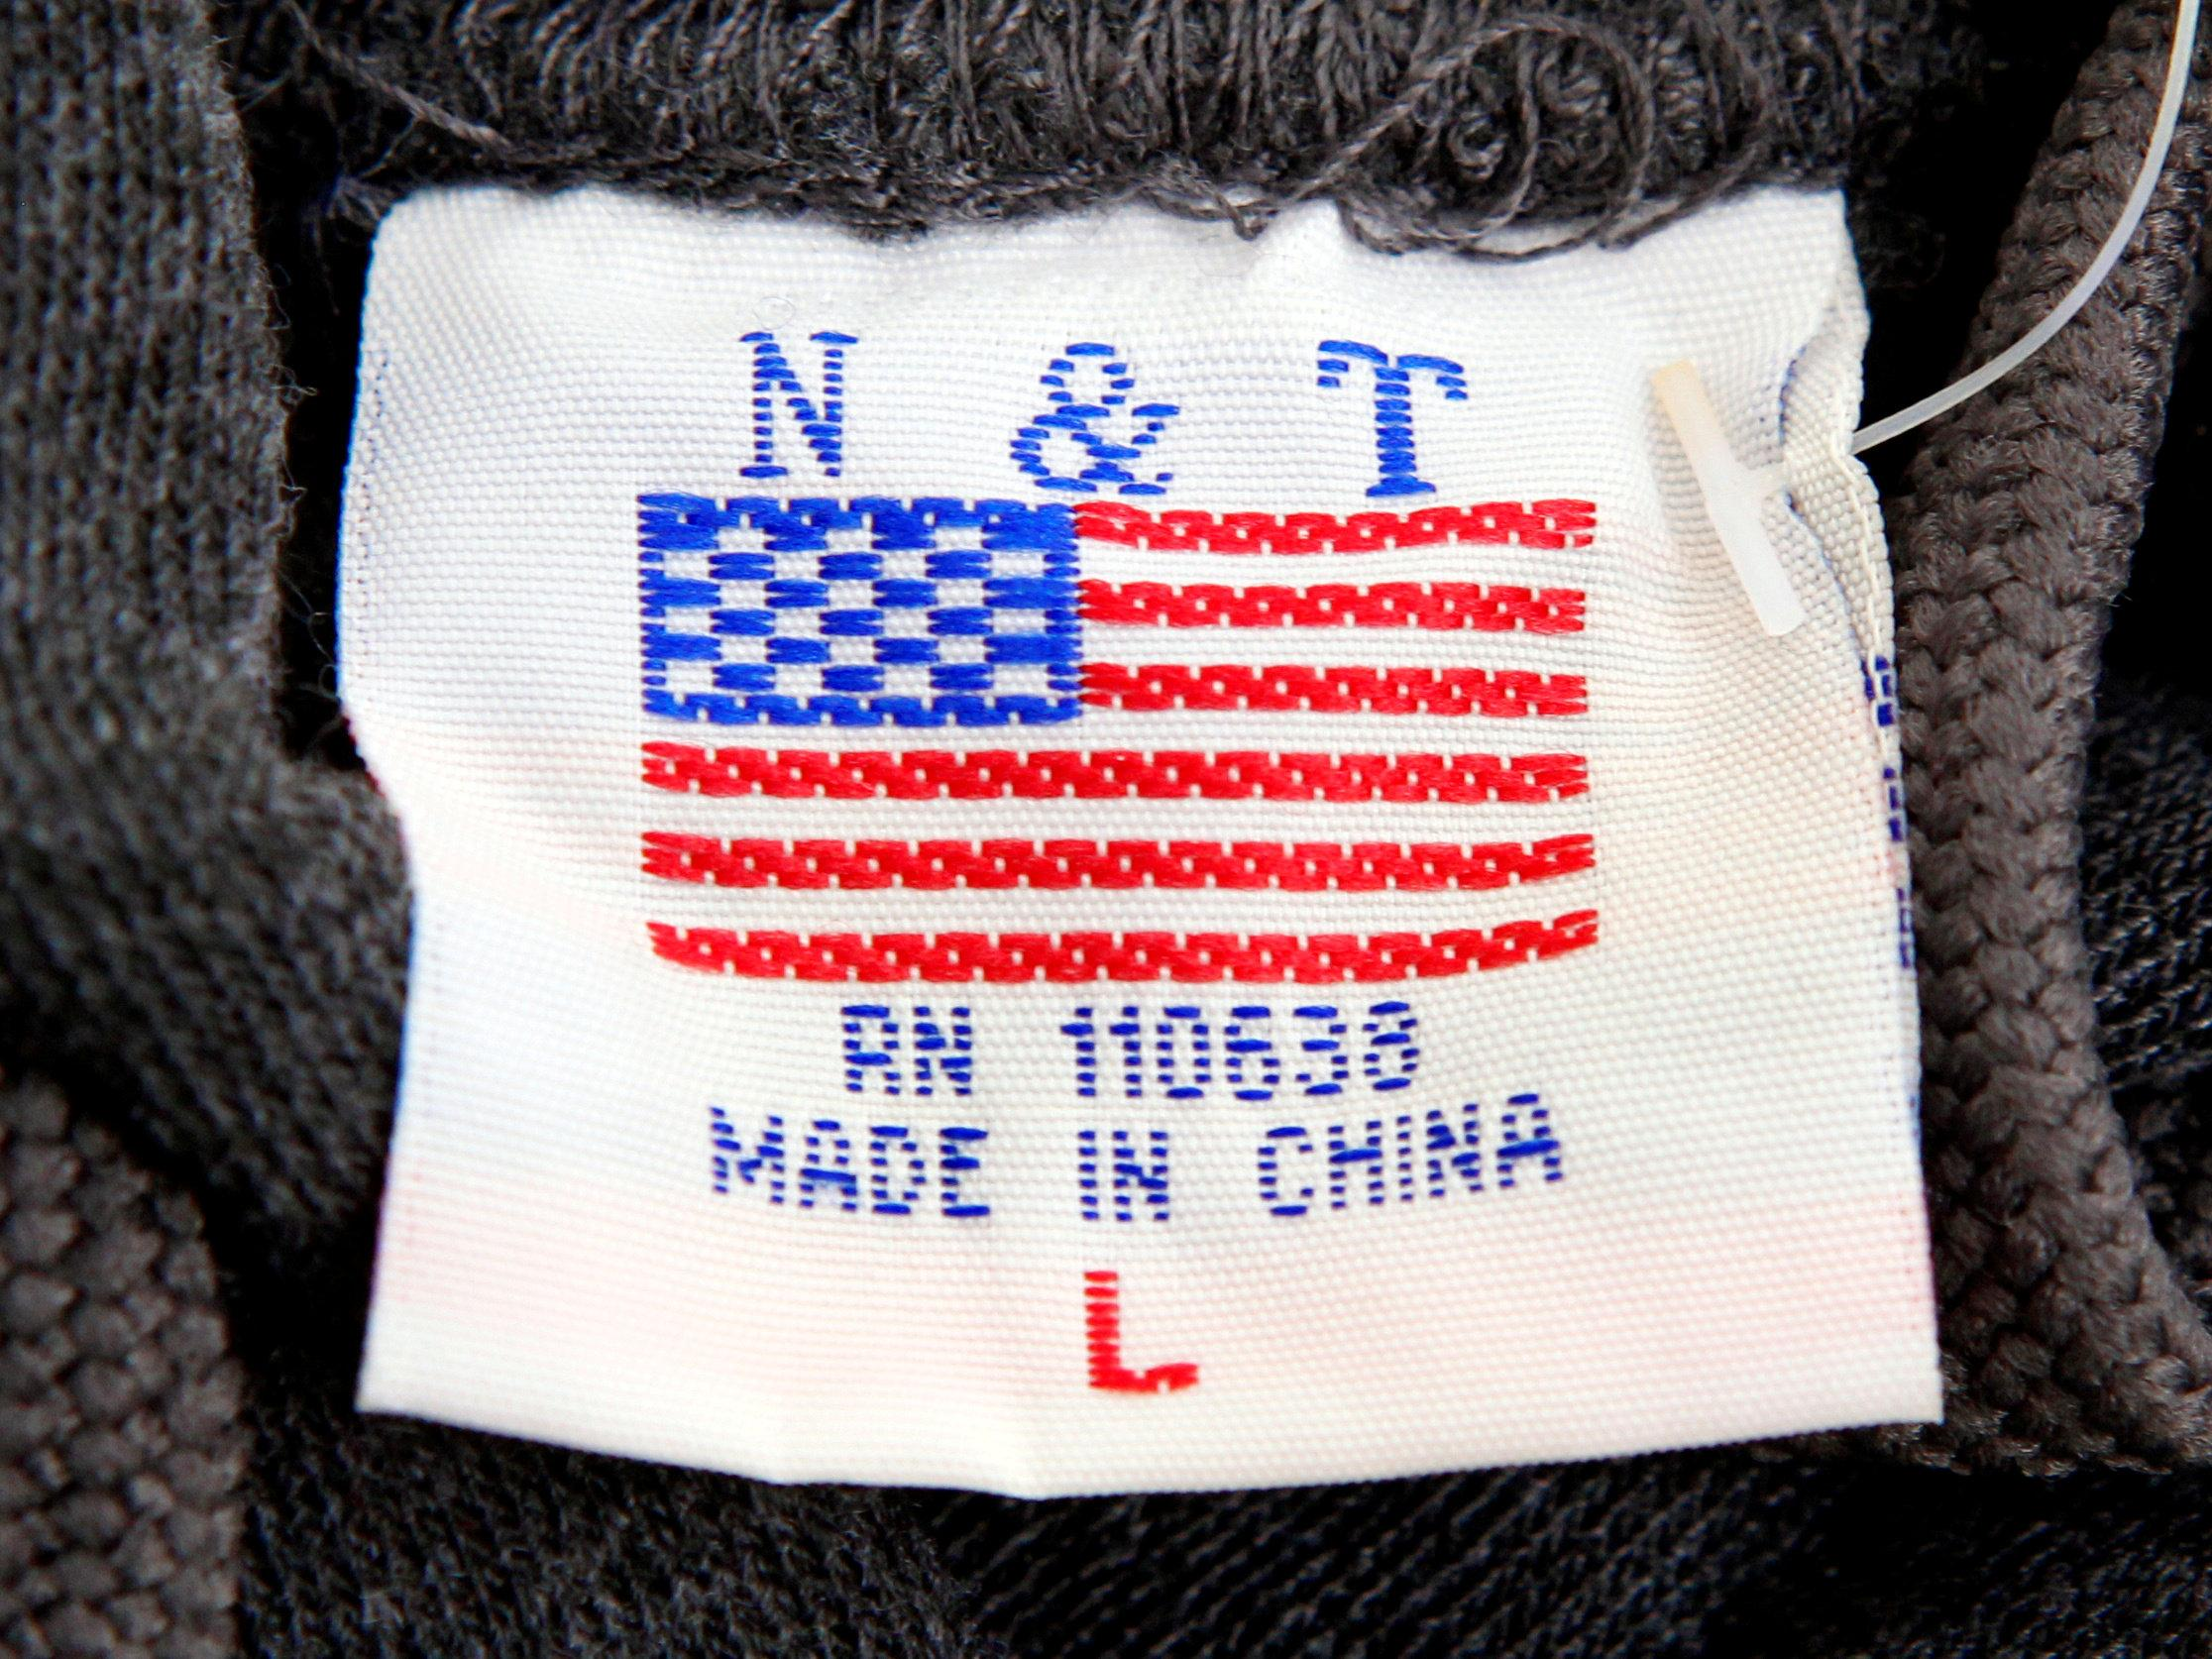 The label of a Washington D.C. sweatshirt bears a U.S. flag but says